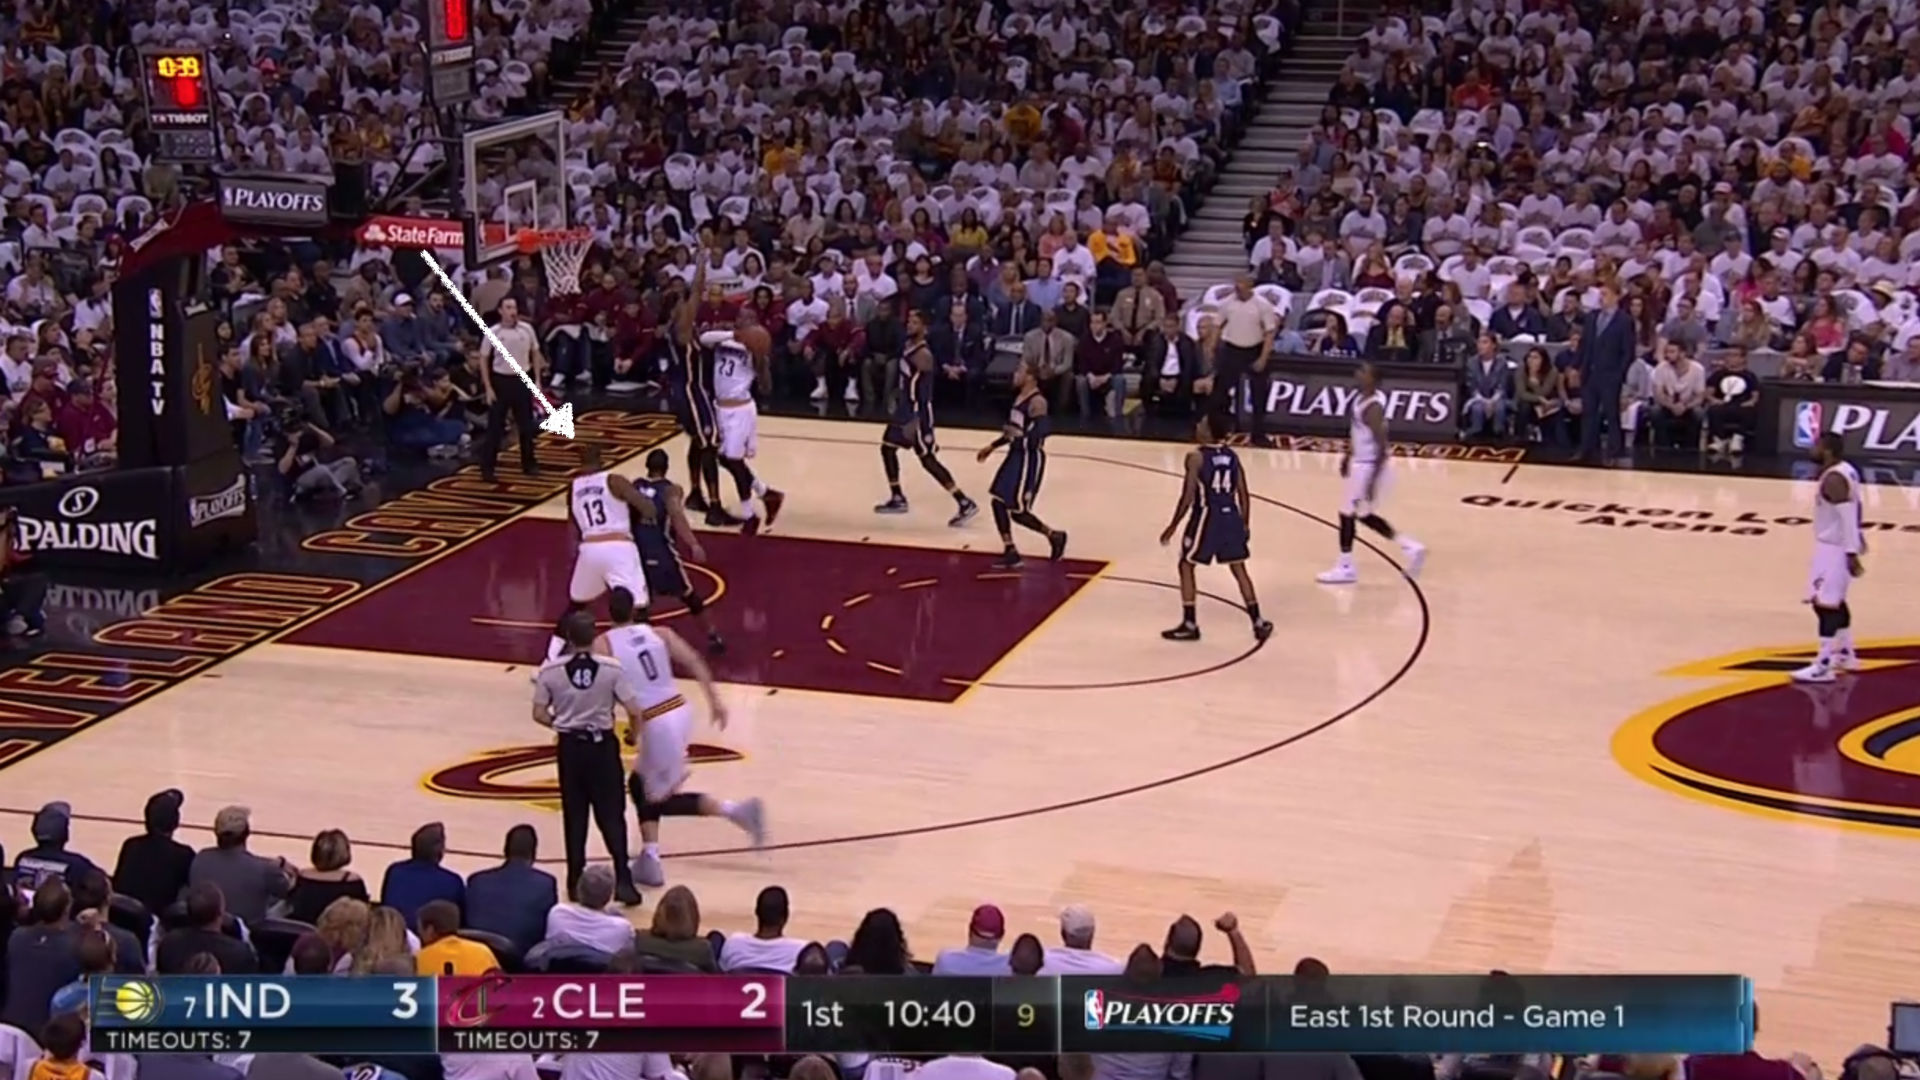 Cavs assume 2-0 lead